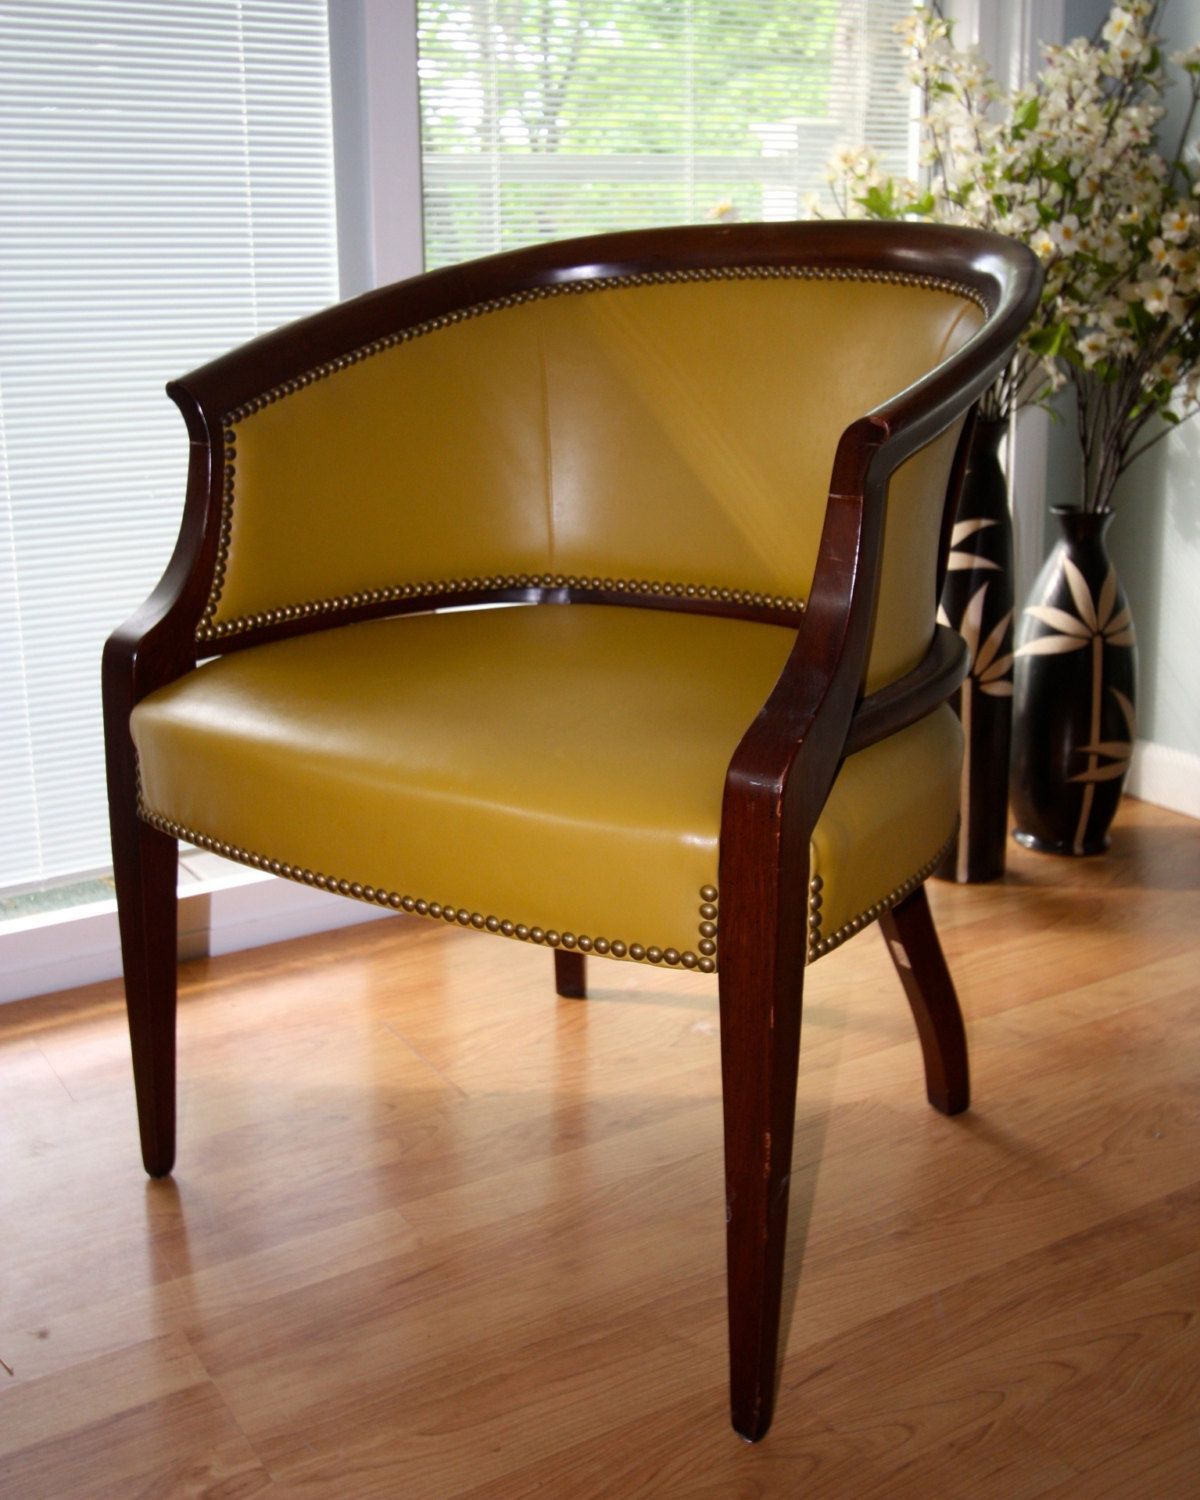 Set of 4 Hickory Chair Furniture Co. Tub Chairs circa 1975